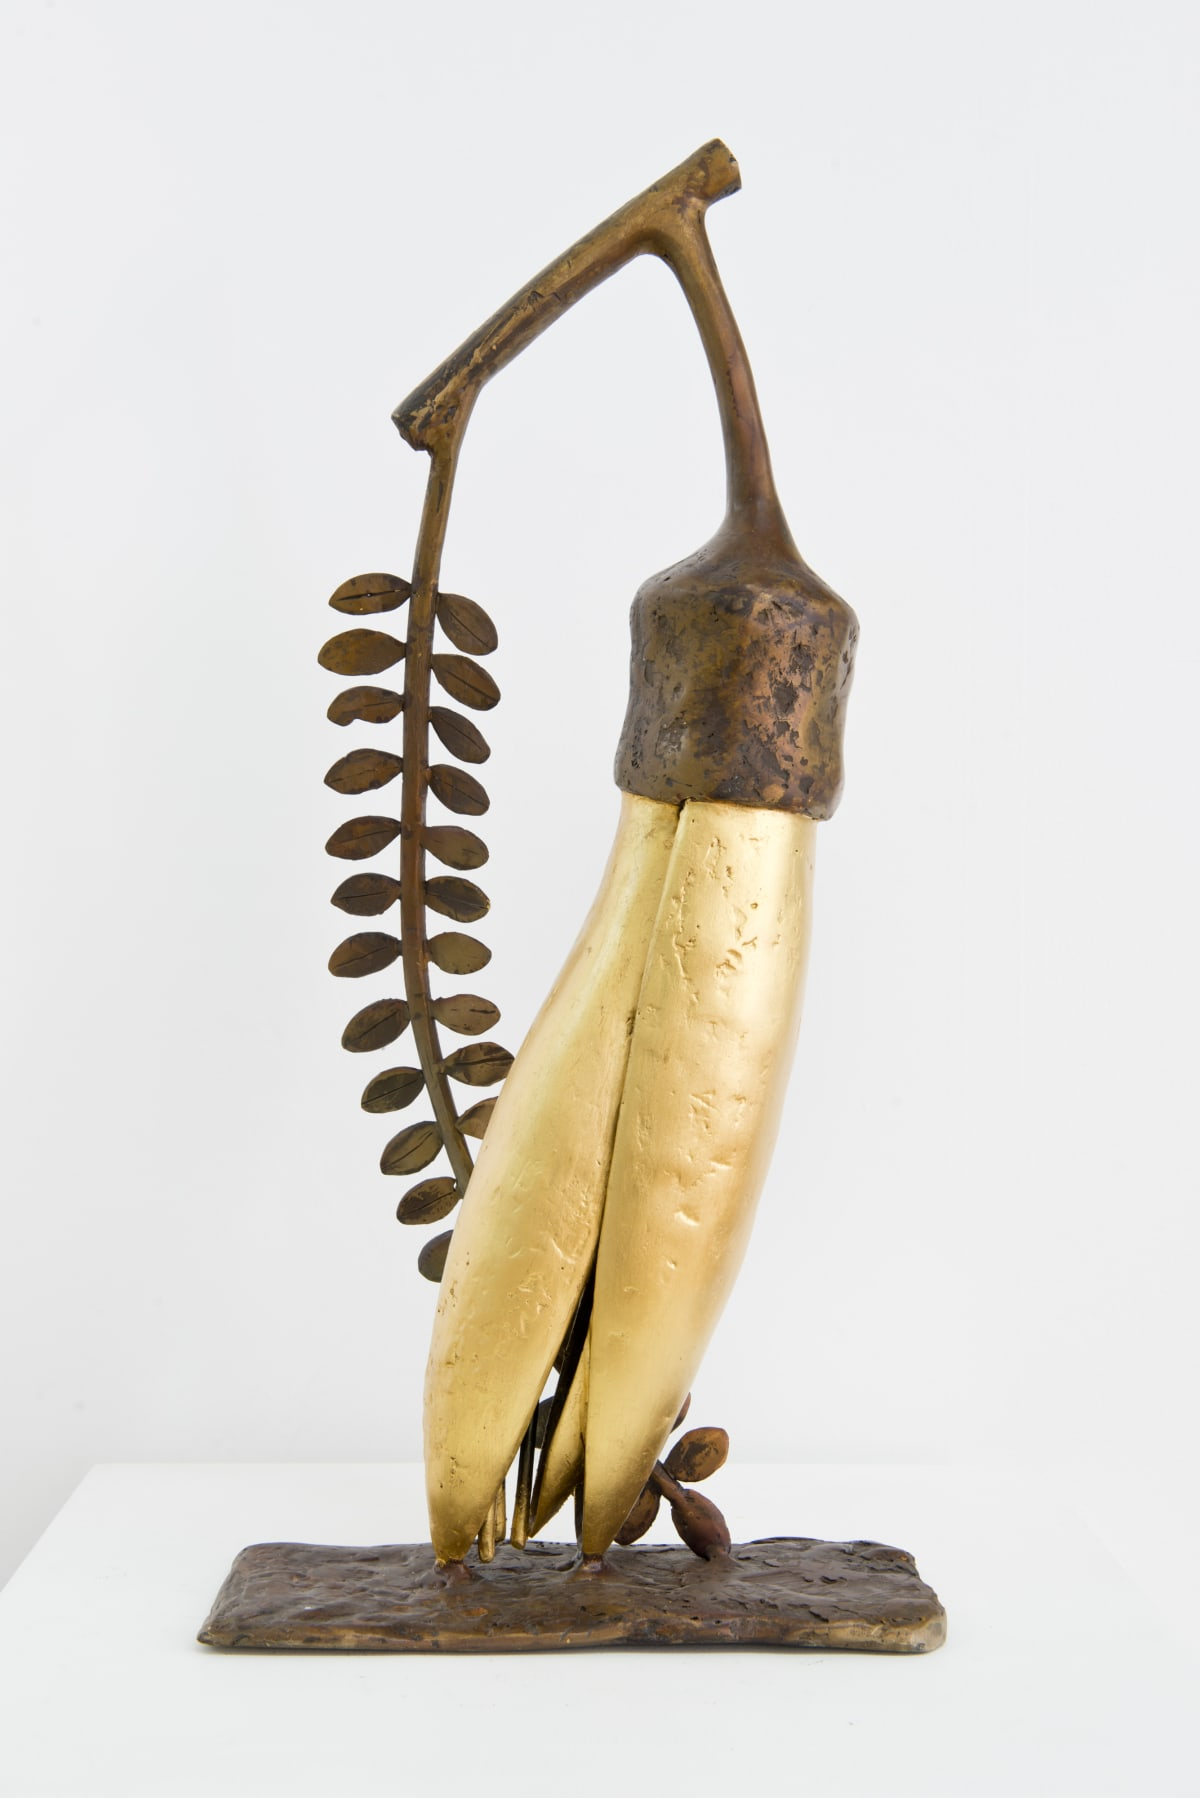 Paul DIBBLE The Gold of the Kowhai [Model], 2015 Cast bronze and 24kt gold 19.7 x 9.1 x 5.9 in 50 x 23 x 15 cm #8/10